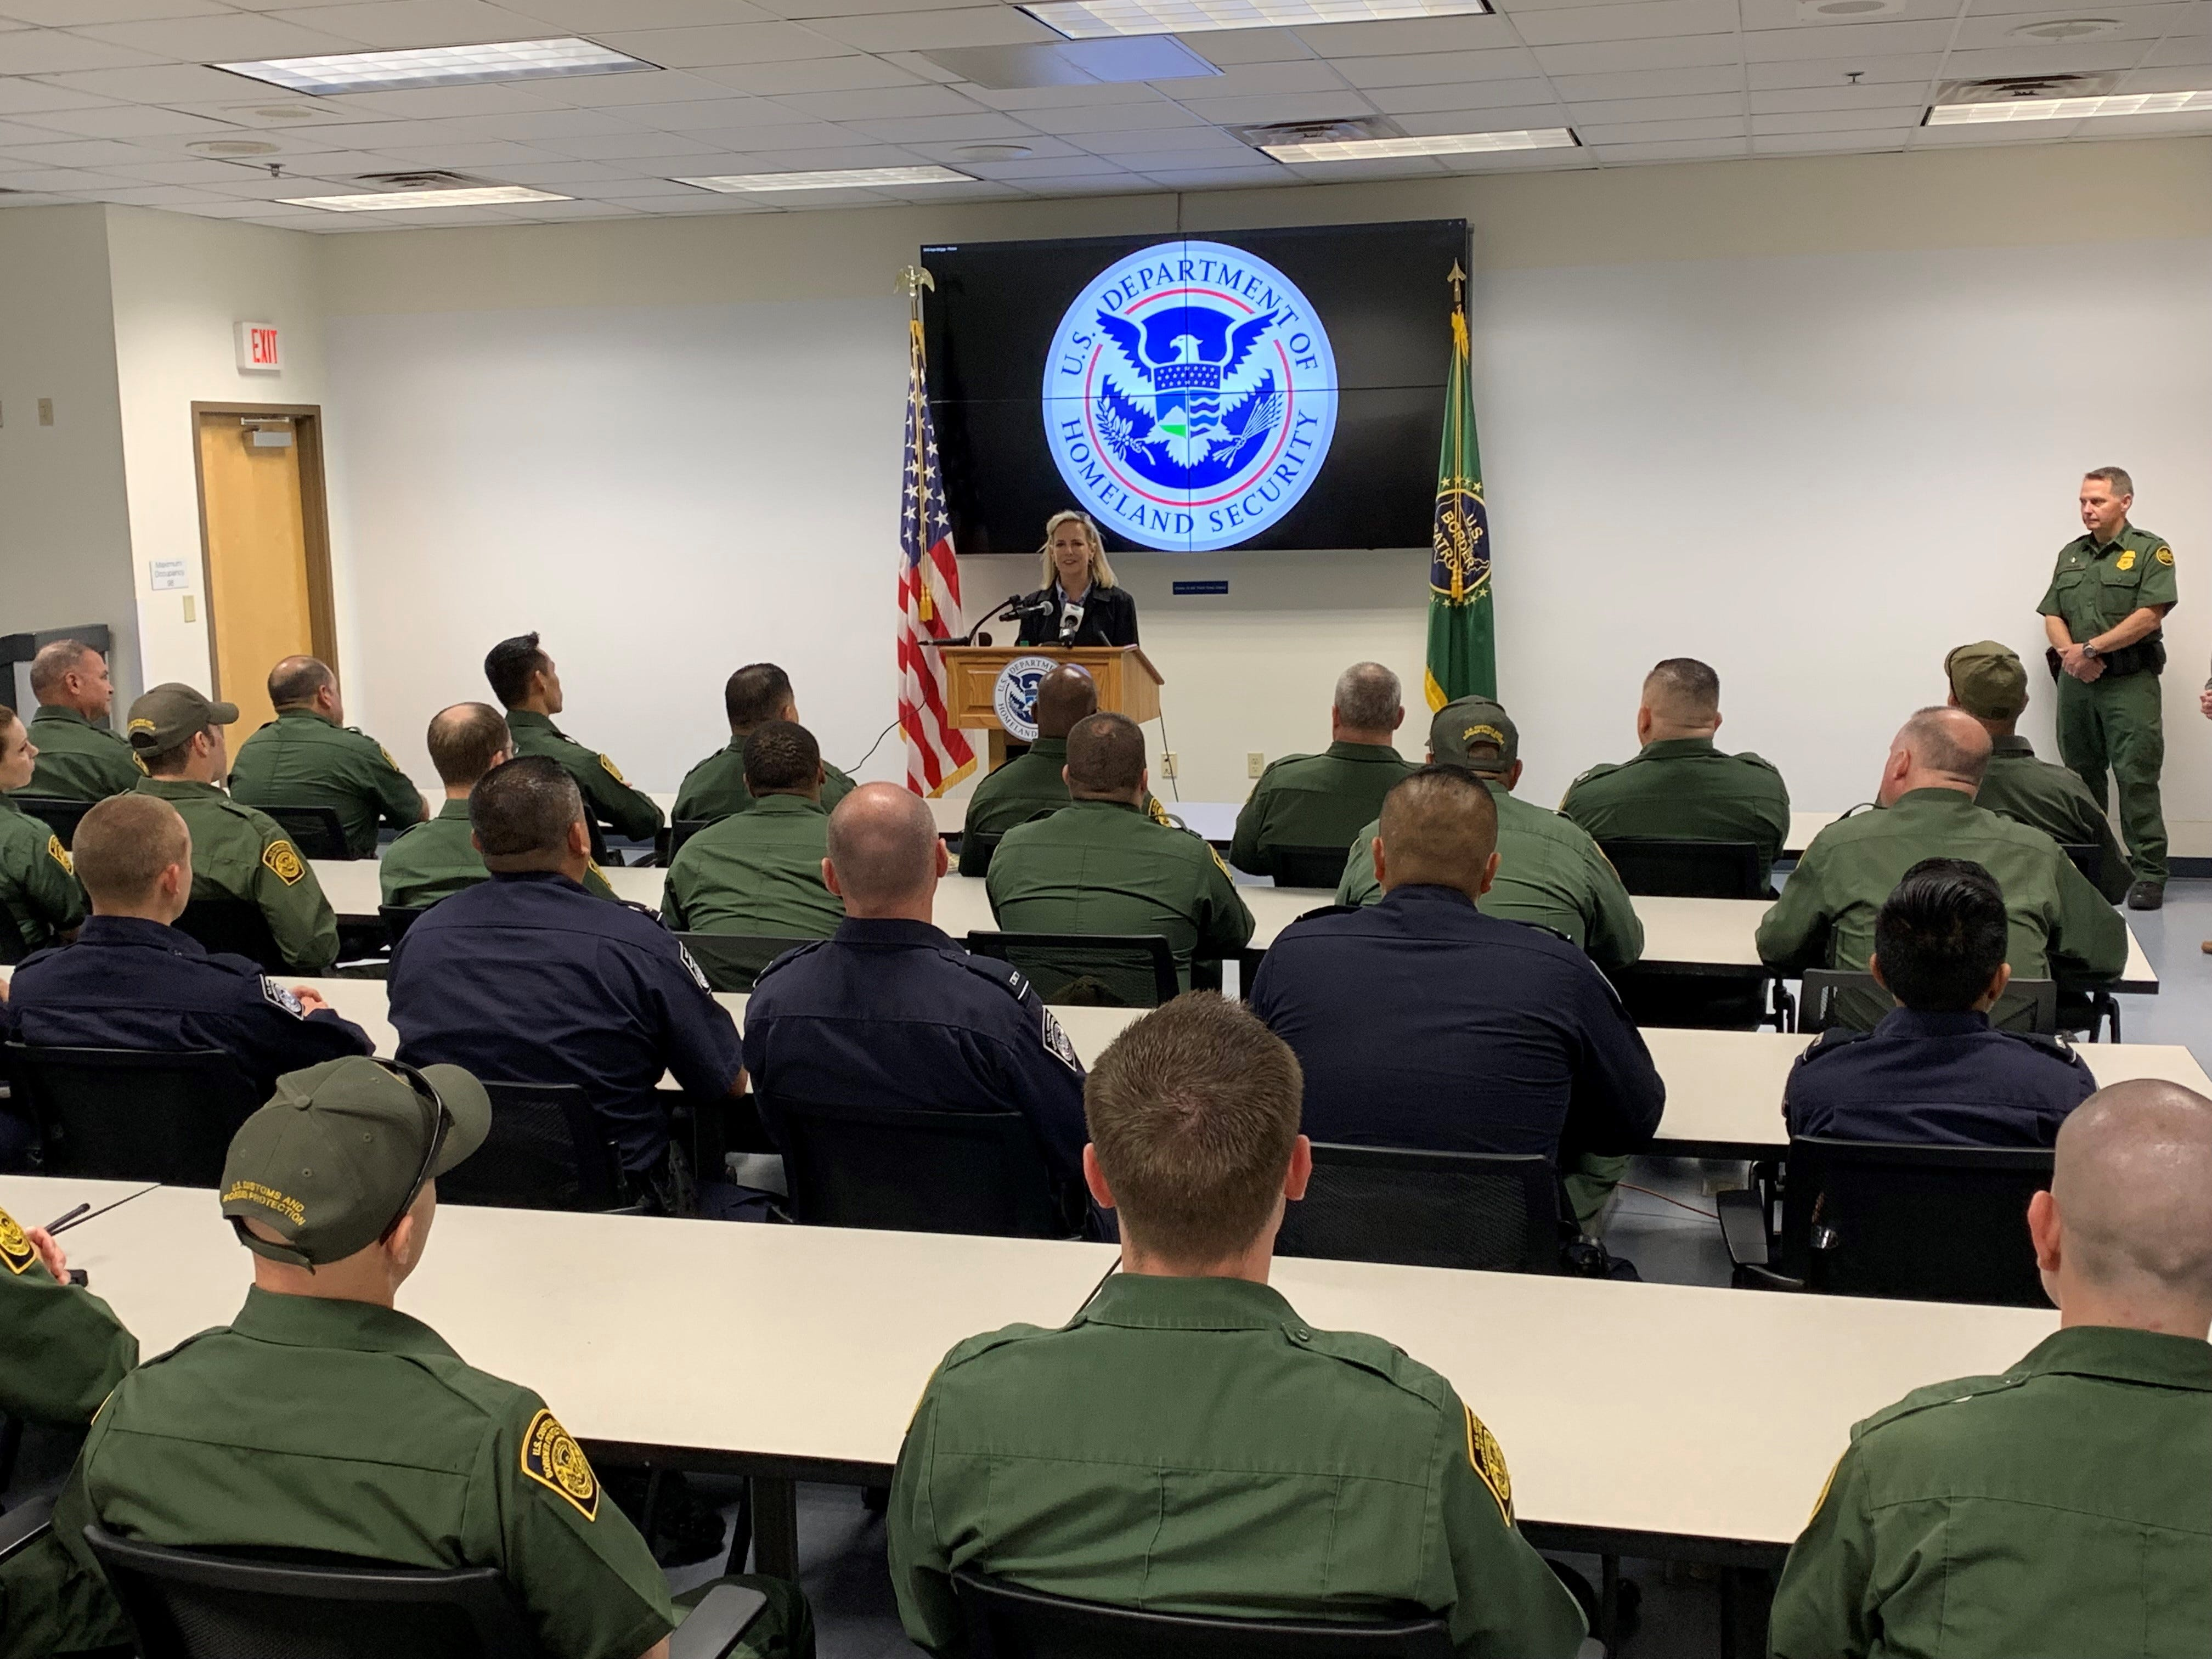 Homeland Sec. Kirstjen Nielsen addresses U.S. Border Patrol agents and customs officers at the Yuma Border Patrol station on April 4, 2019.